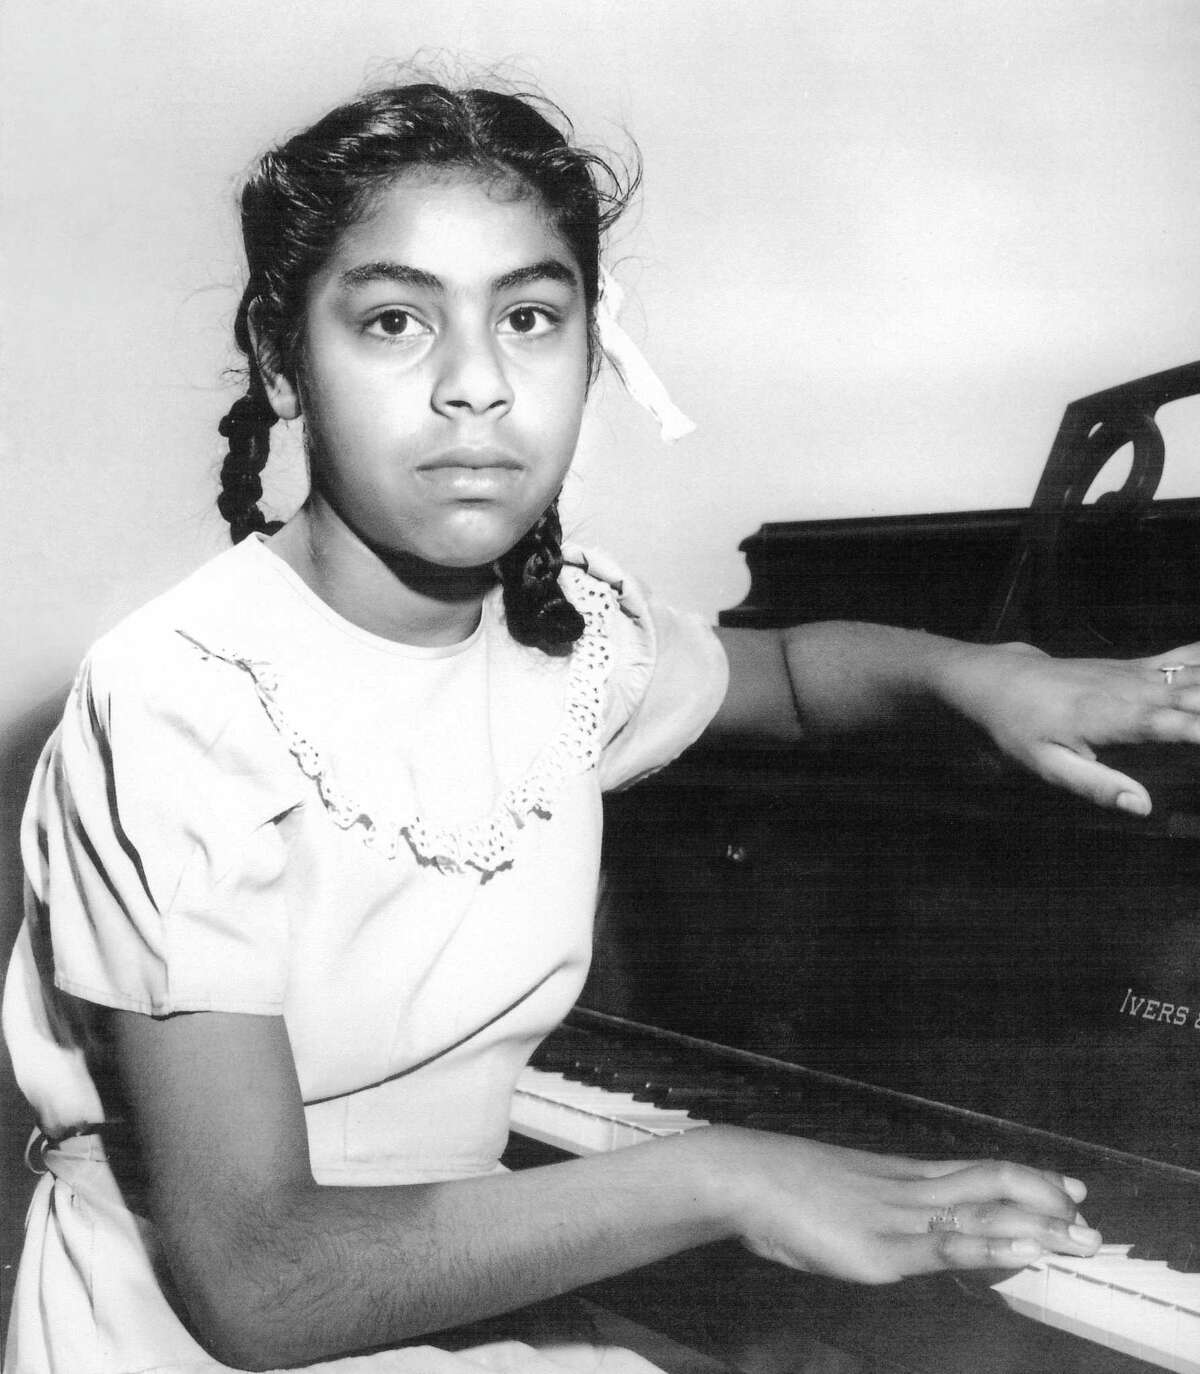 Sylvia Mendez and her parents fought for the integration of schools in California. They deserve recognition - and the National Museum of the American Latino would honor her and countless others.